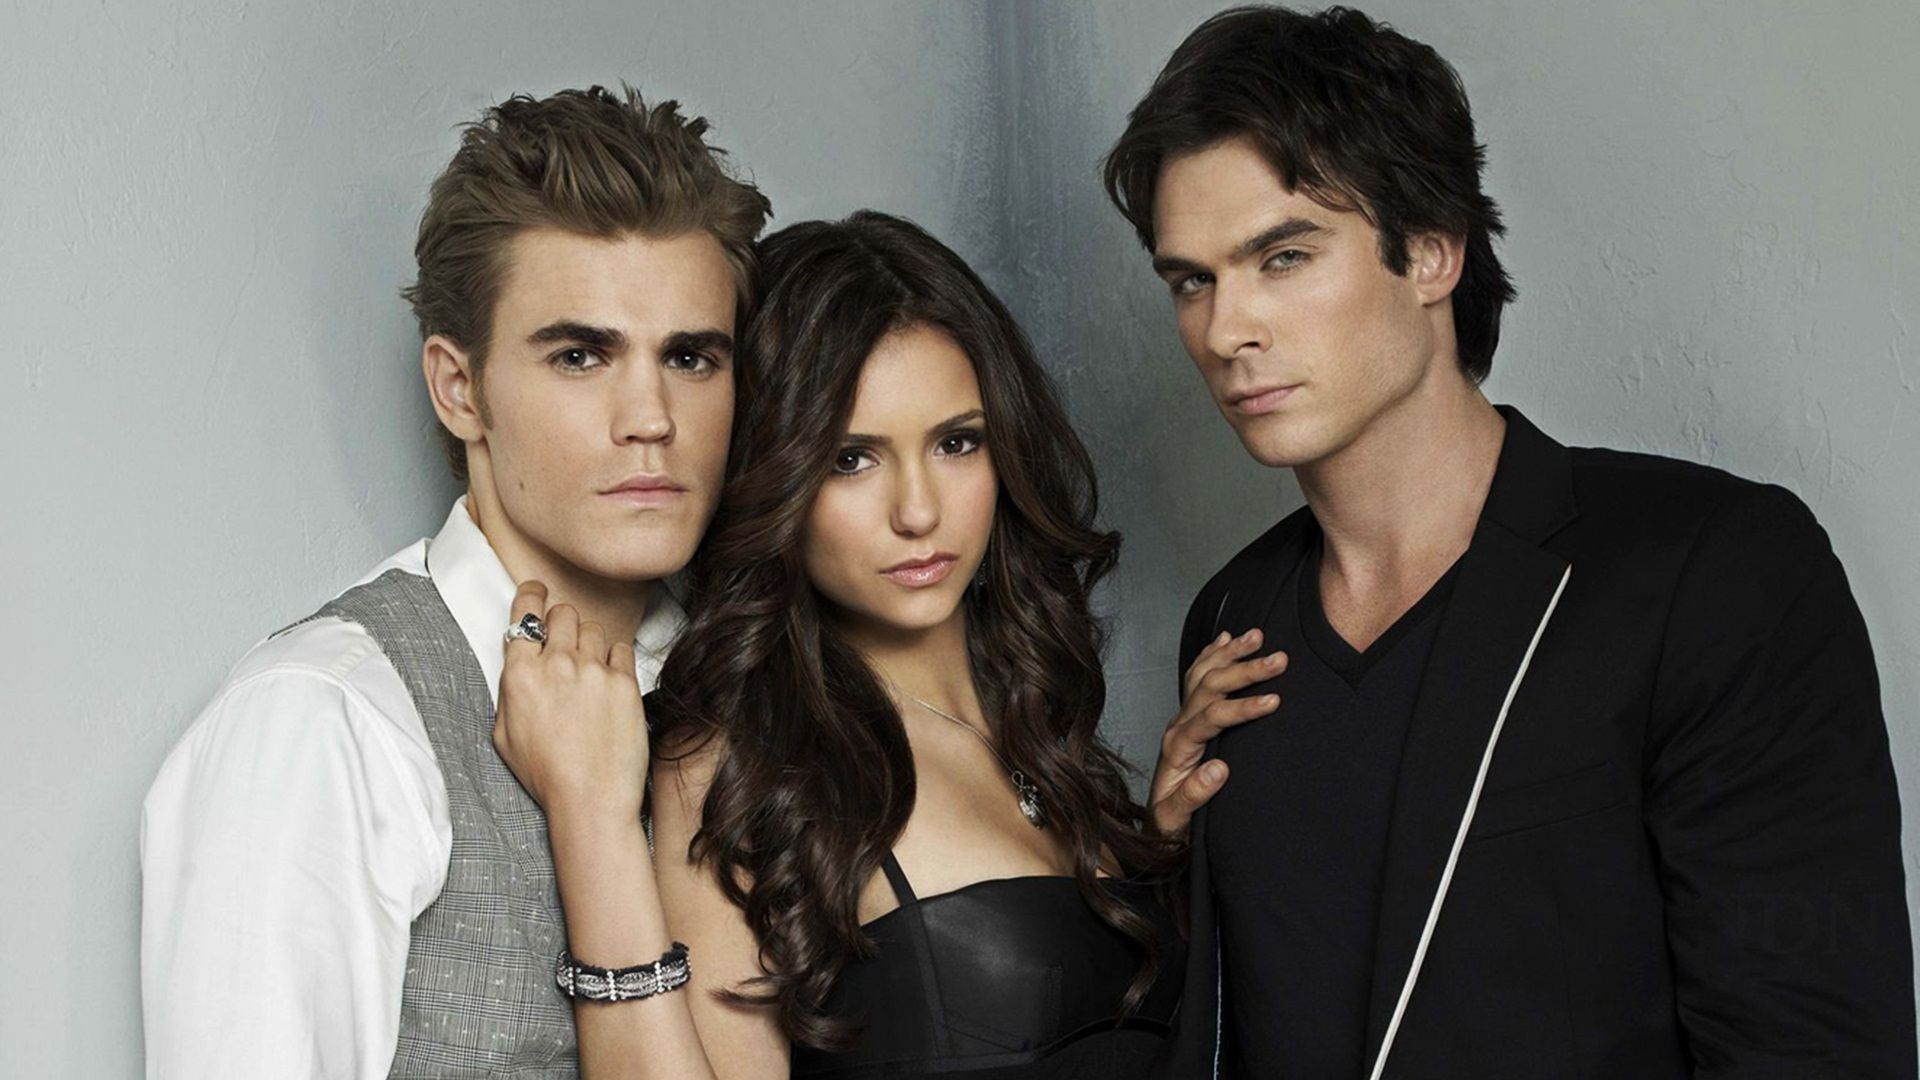 The Vampire Diaries HD Wallpapers - Wallpaper, High Definition ...